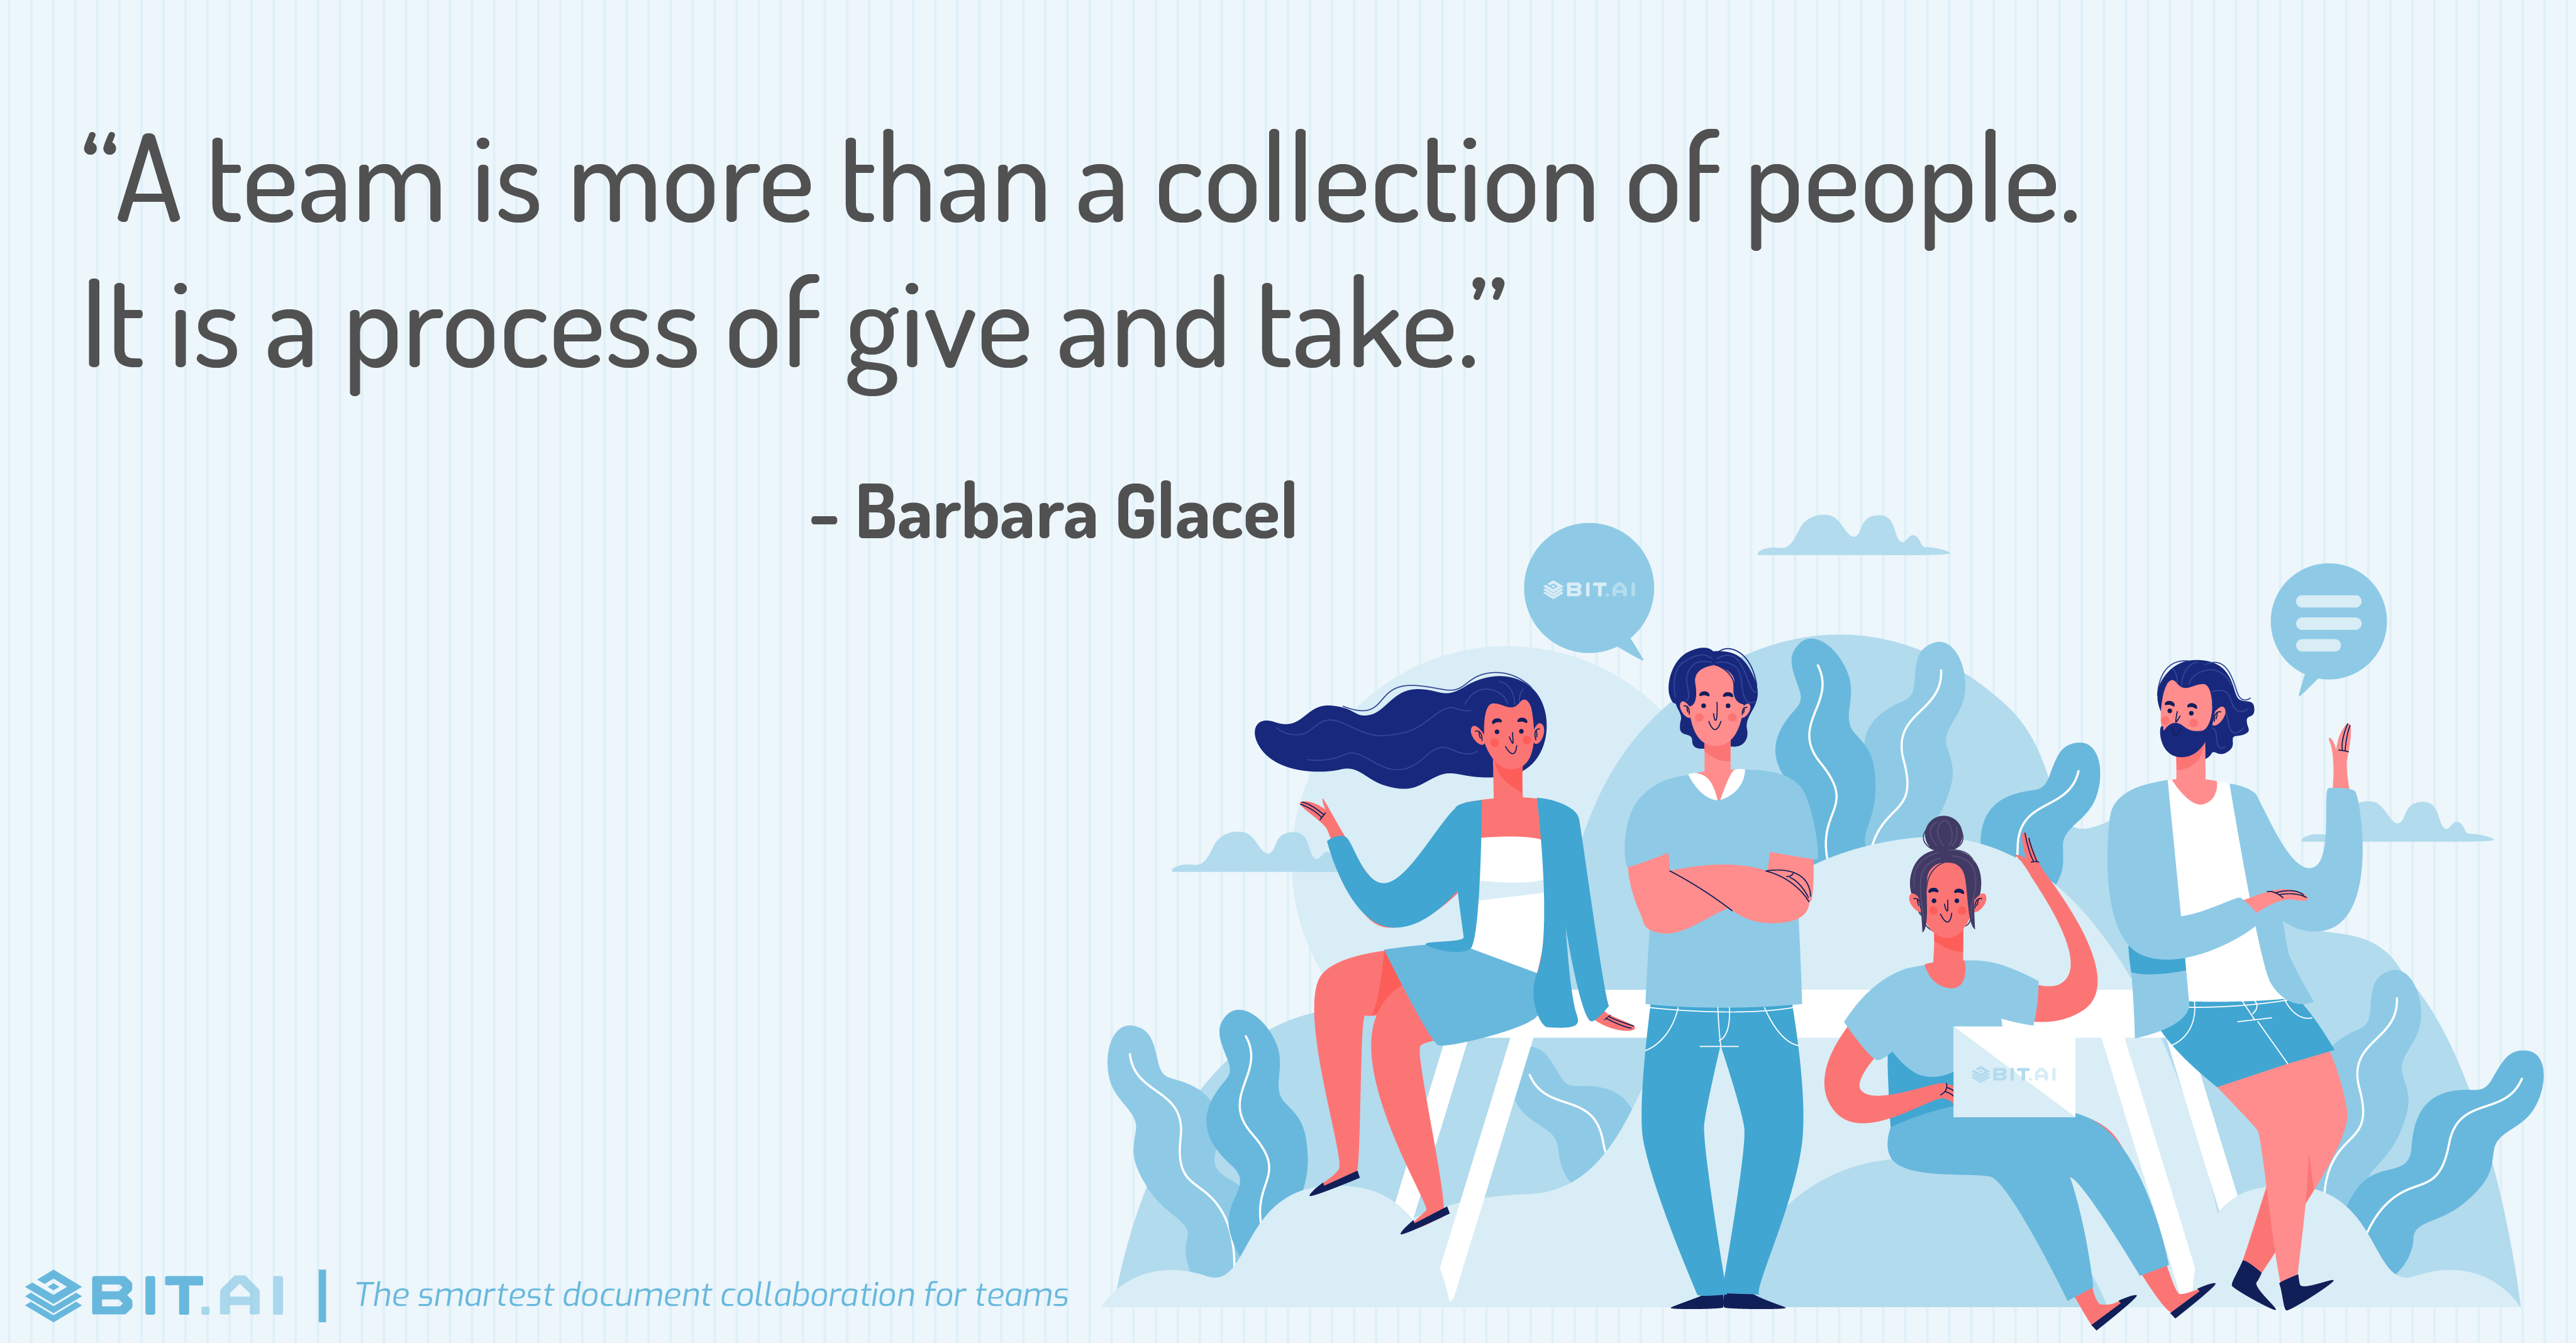 """A team is more than a collection of people. It is a process of give and take."" - Barbara Glacel"